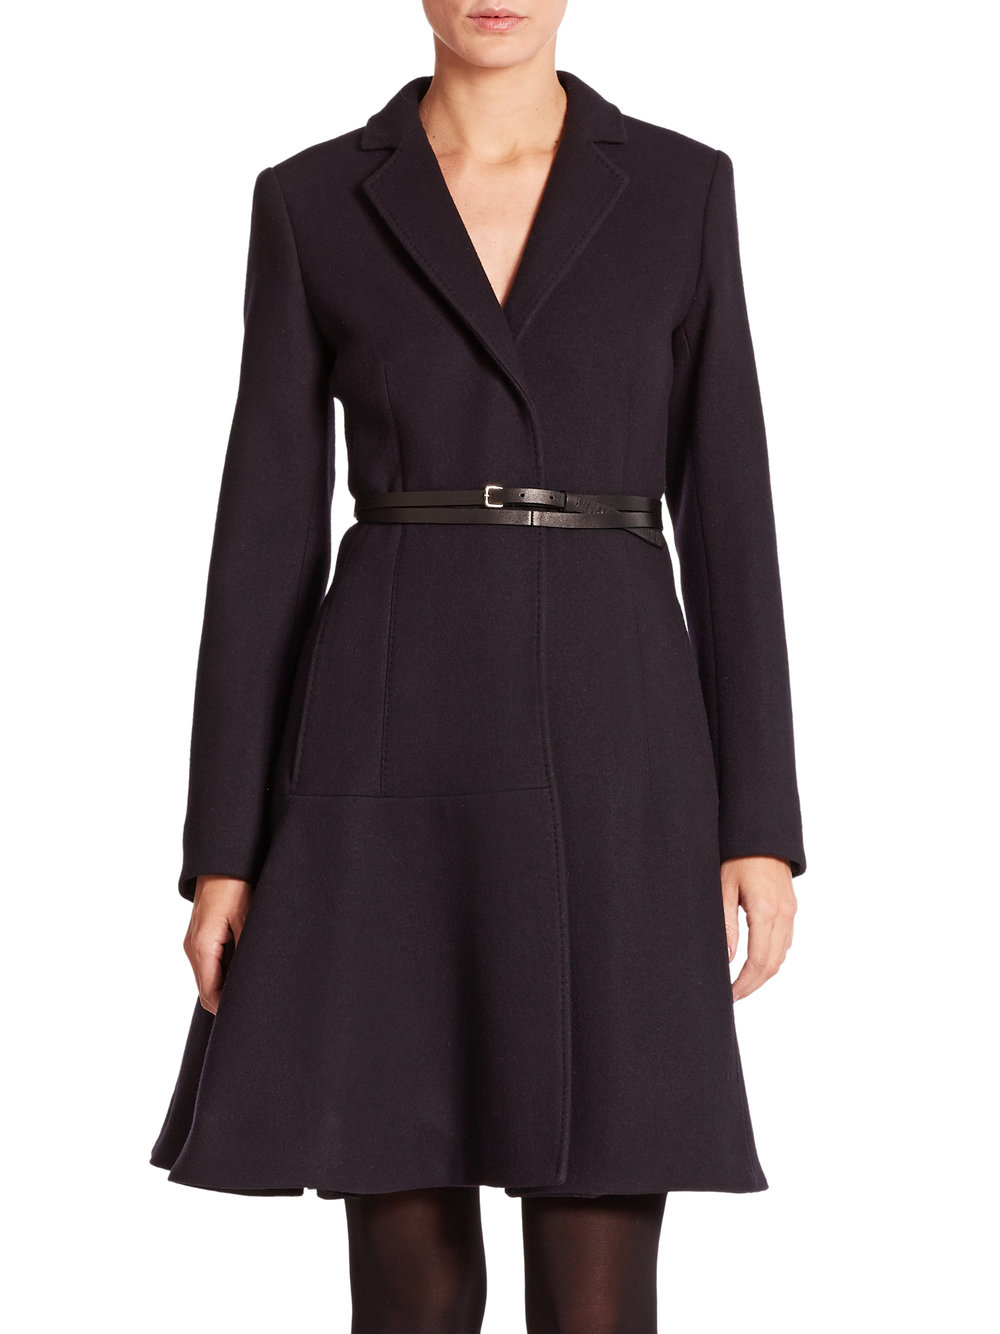 max-mara-midnight-blue-malia-belted-stretch-wool-coat-blue-product-2-736557335-normal.jpeg